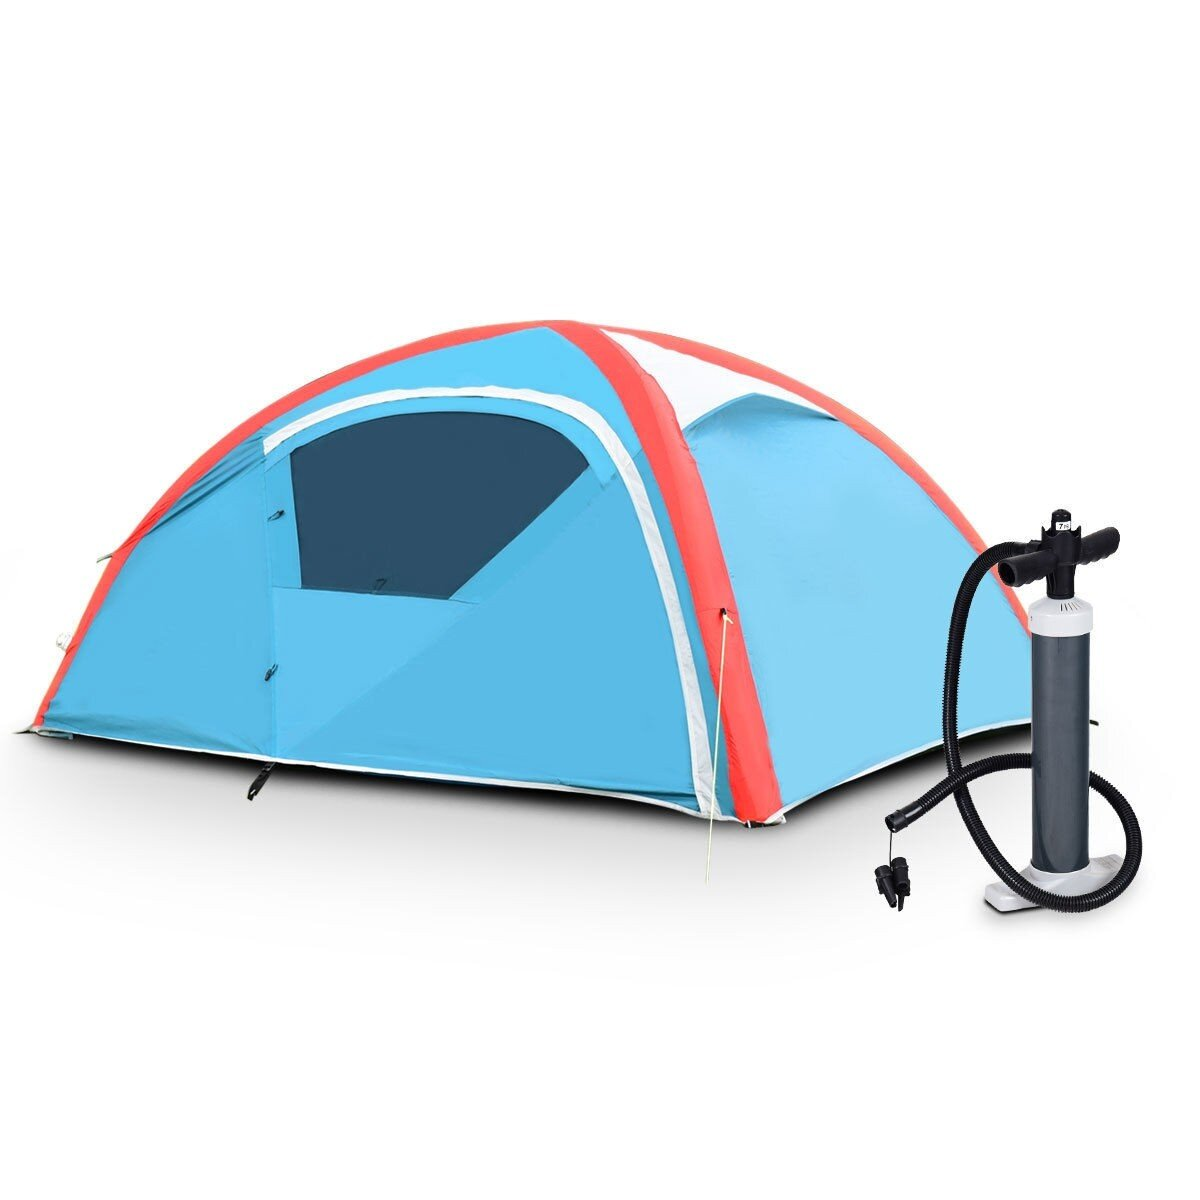 Lukio Inflatable 3 Person Tent With Bag And Pump Wayfair